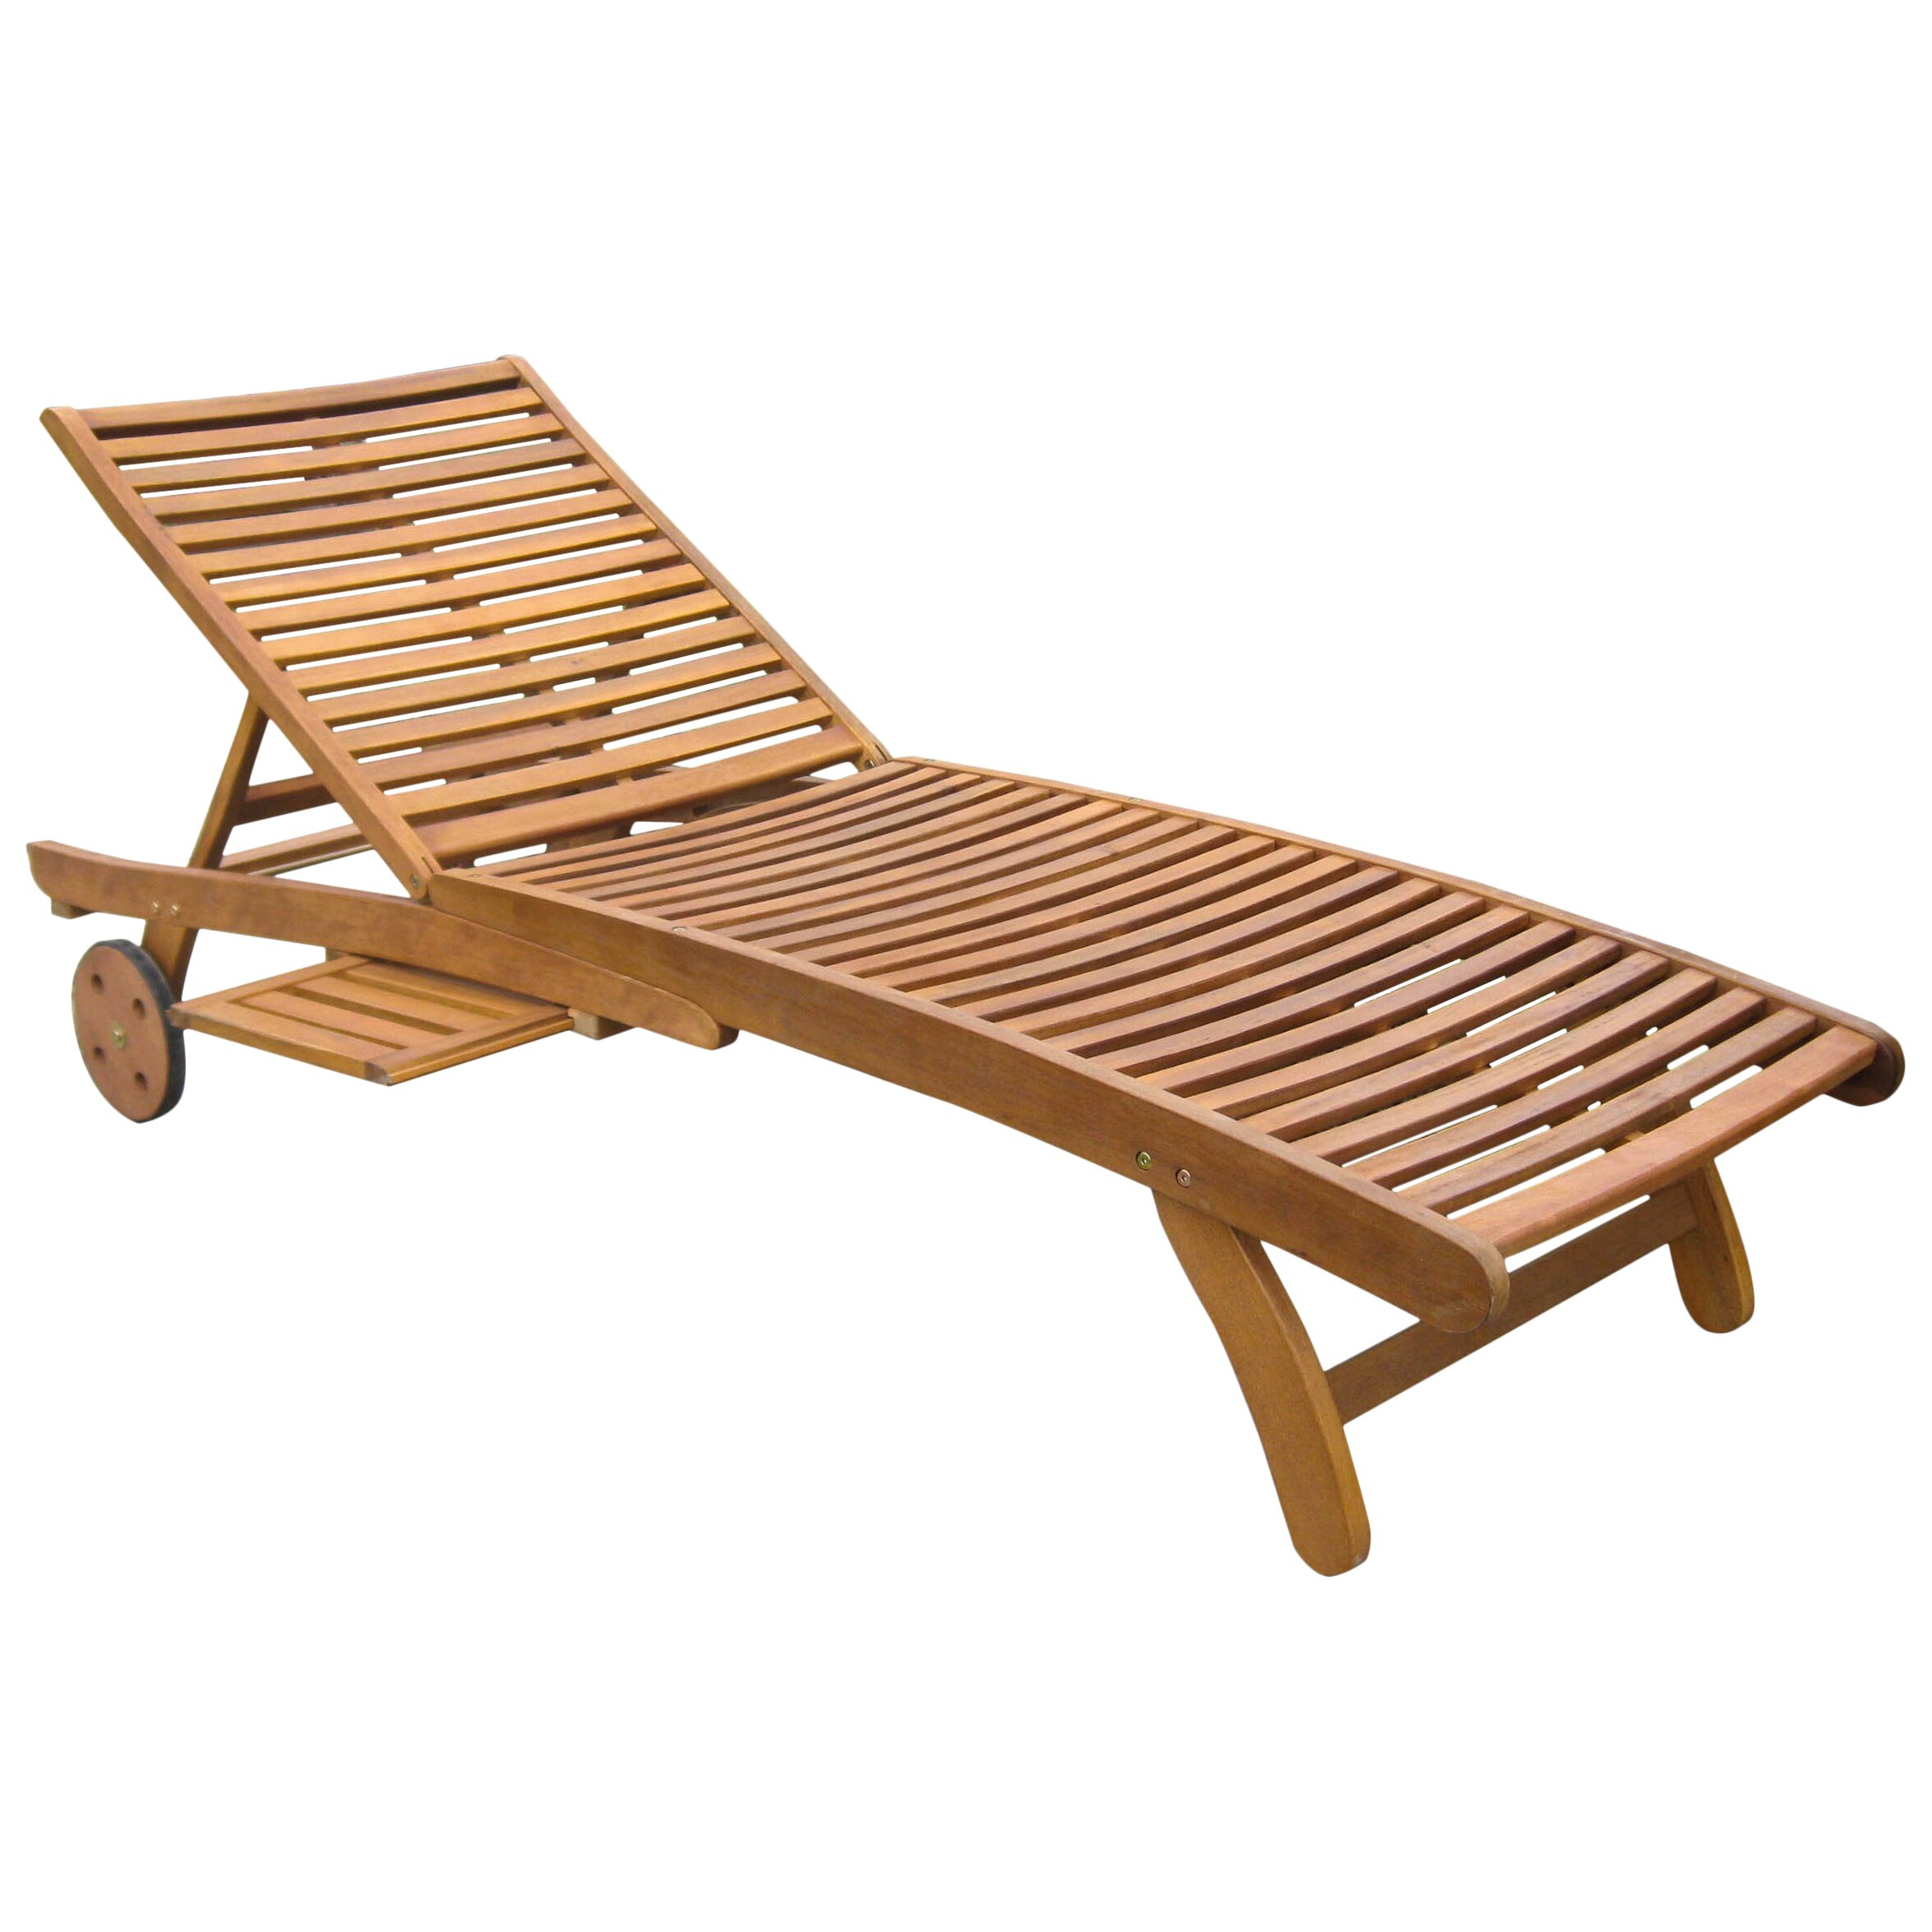 Breakwater bay sandy point chaise lounge reviews wayfair for 2 chaise lounges